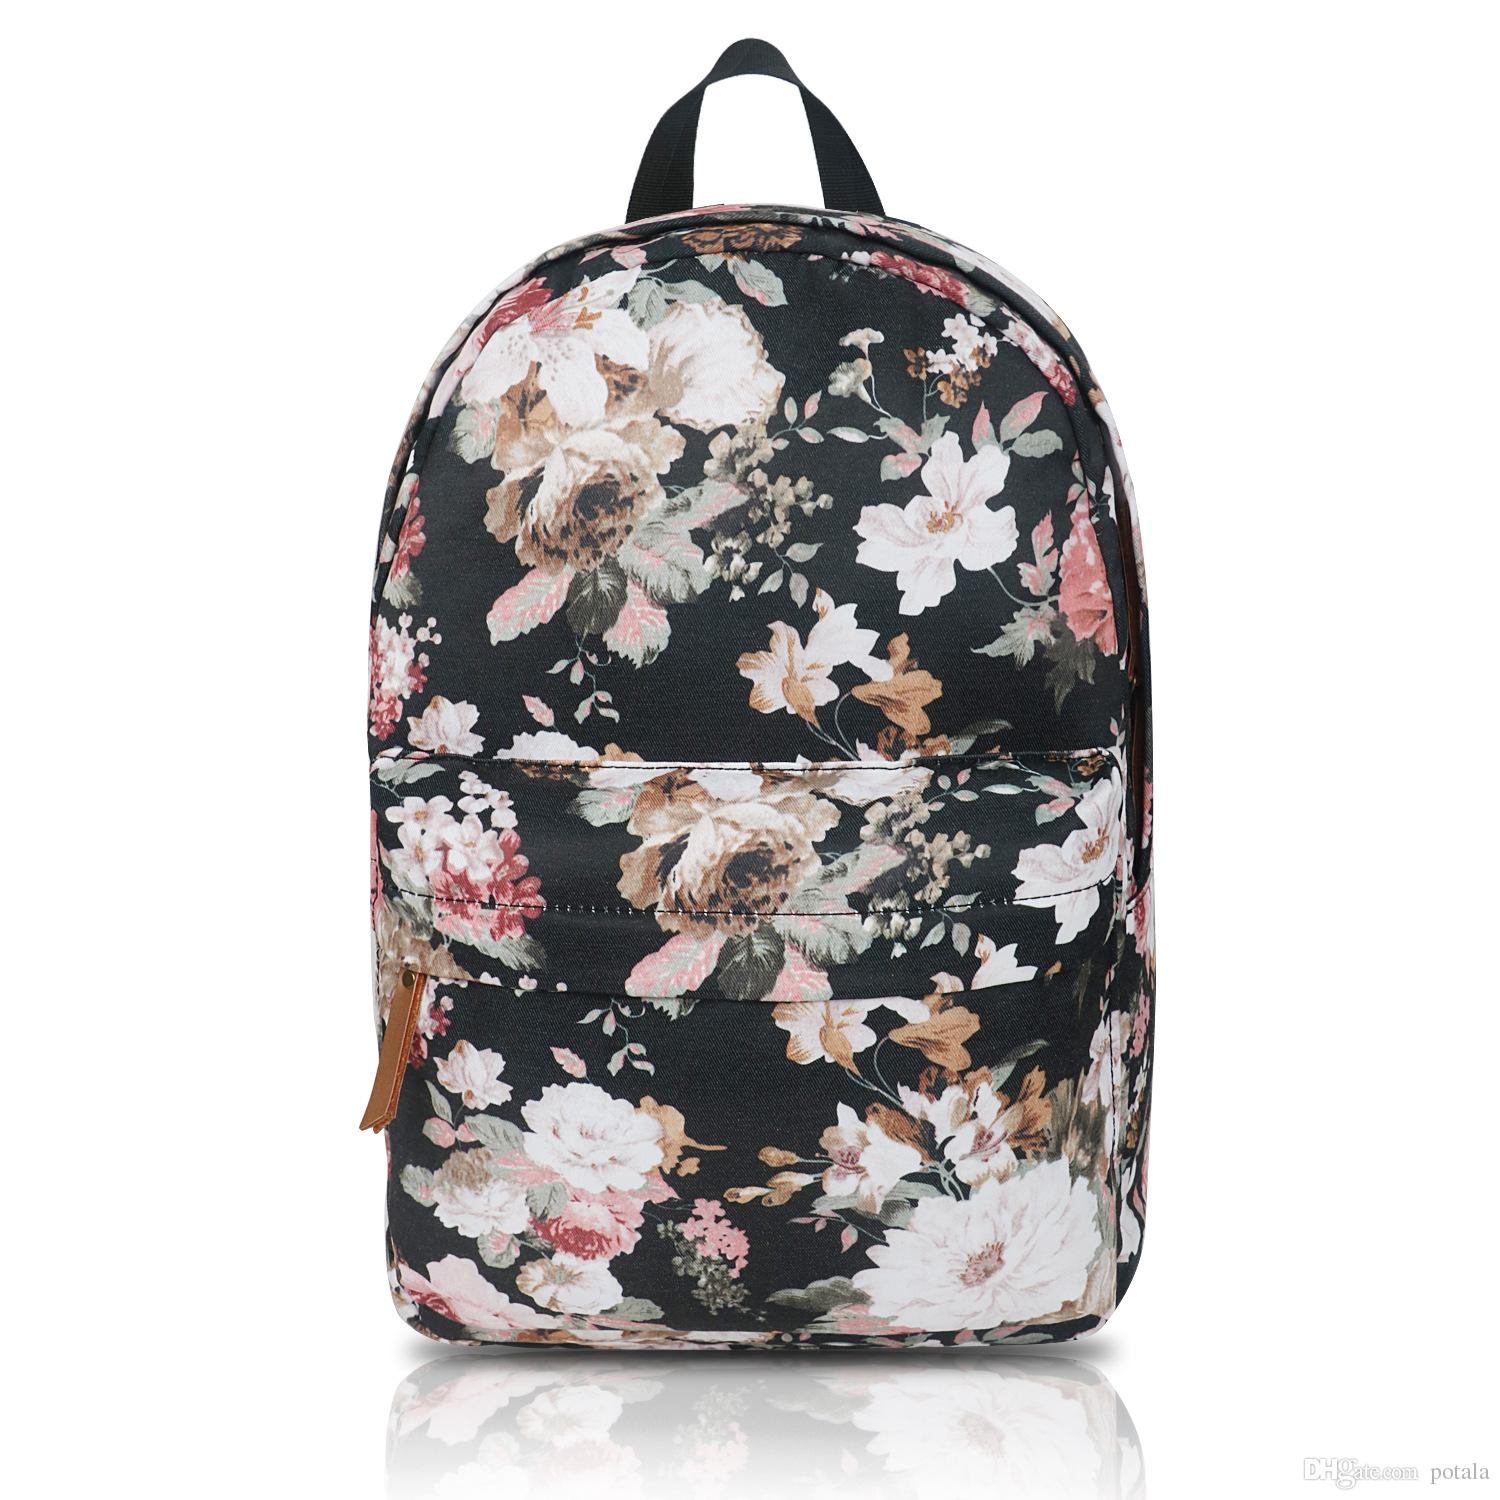 0991f4c00575 33*13.5*40CM Canva&Polyester School Bag rose forest Encrypted lining 16  Laptop Waterproof fabric School Backpack Daypacks Red big capactiy